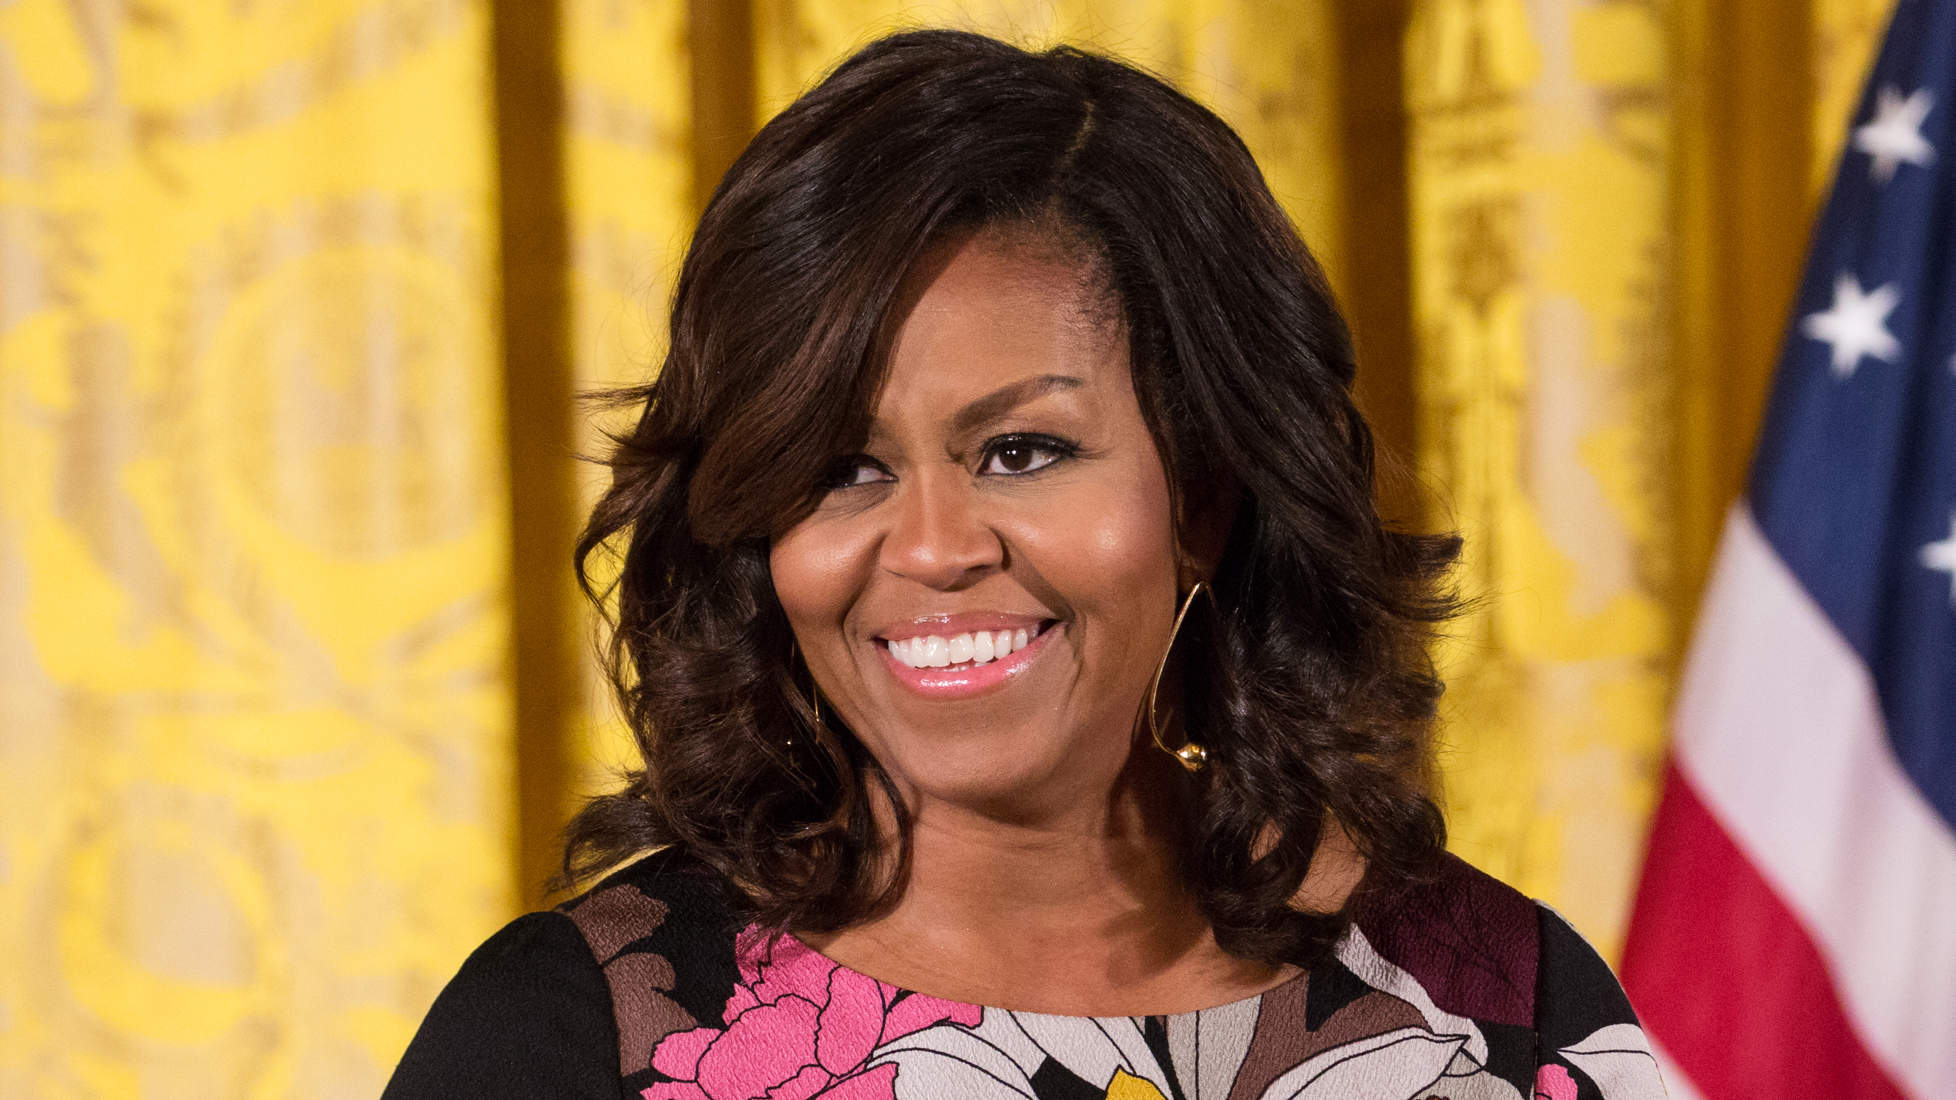 Michelle Obama Reveals She Felt 'Lost and Alone' After Suffering a Miscarriage 20 Years Ago